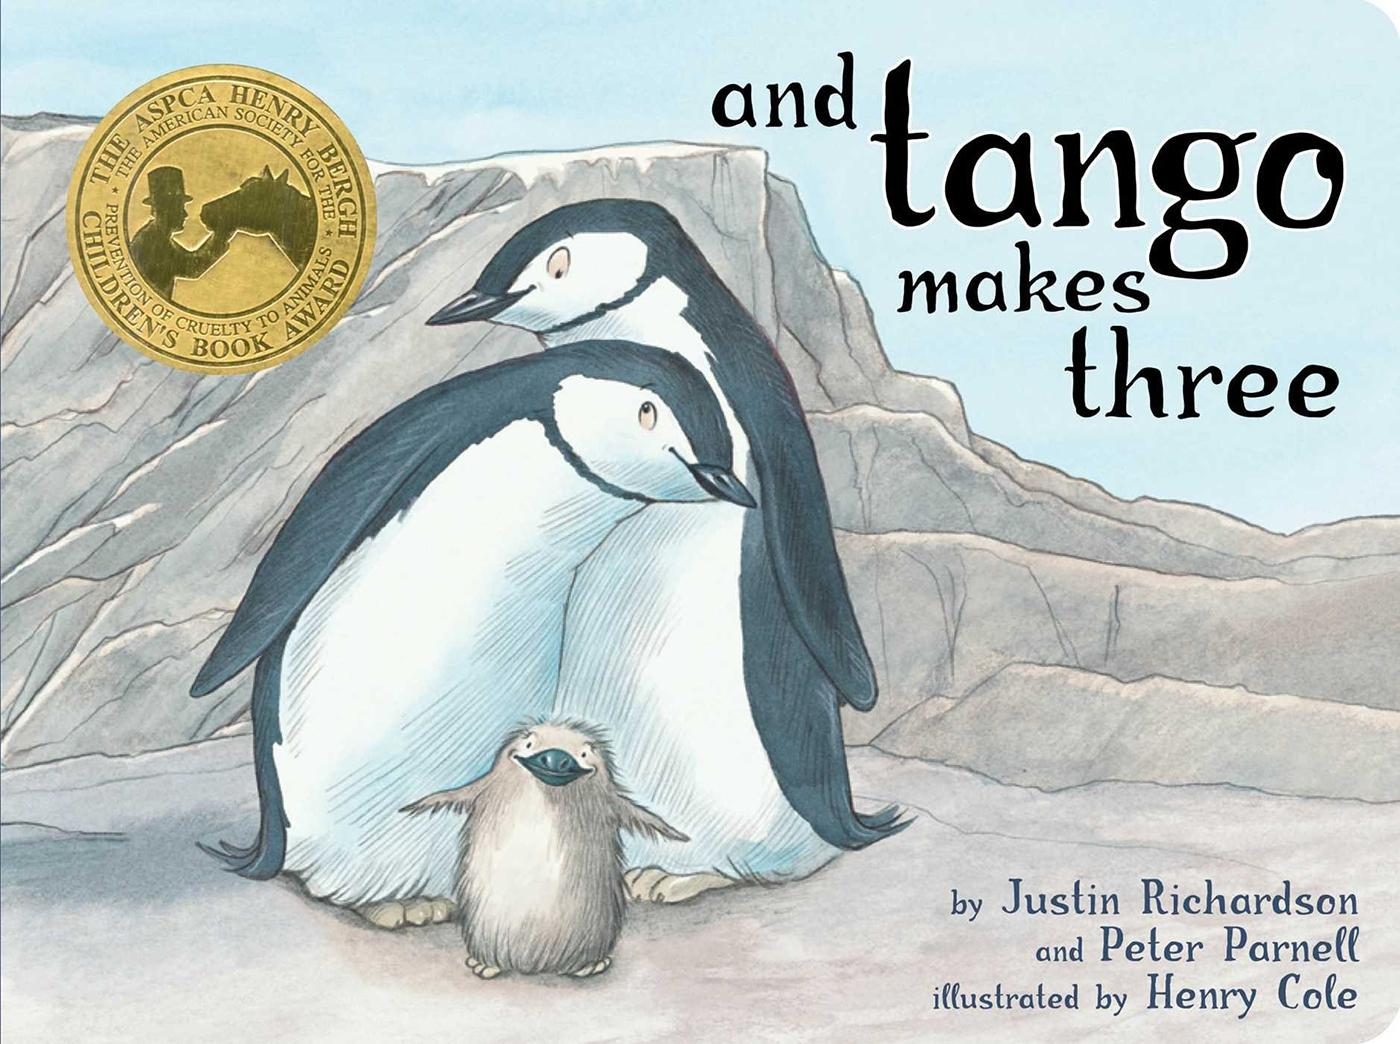 The book And Tango Makes Three